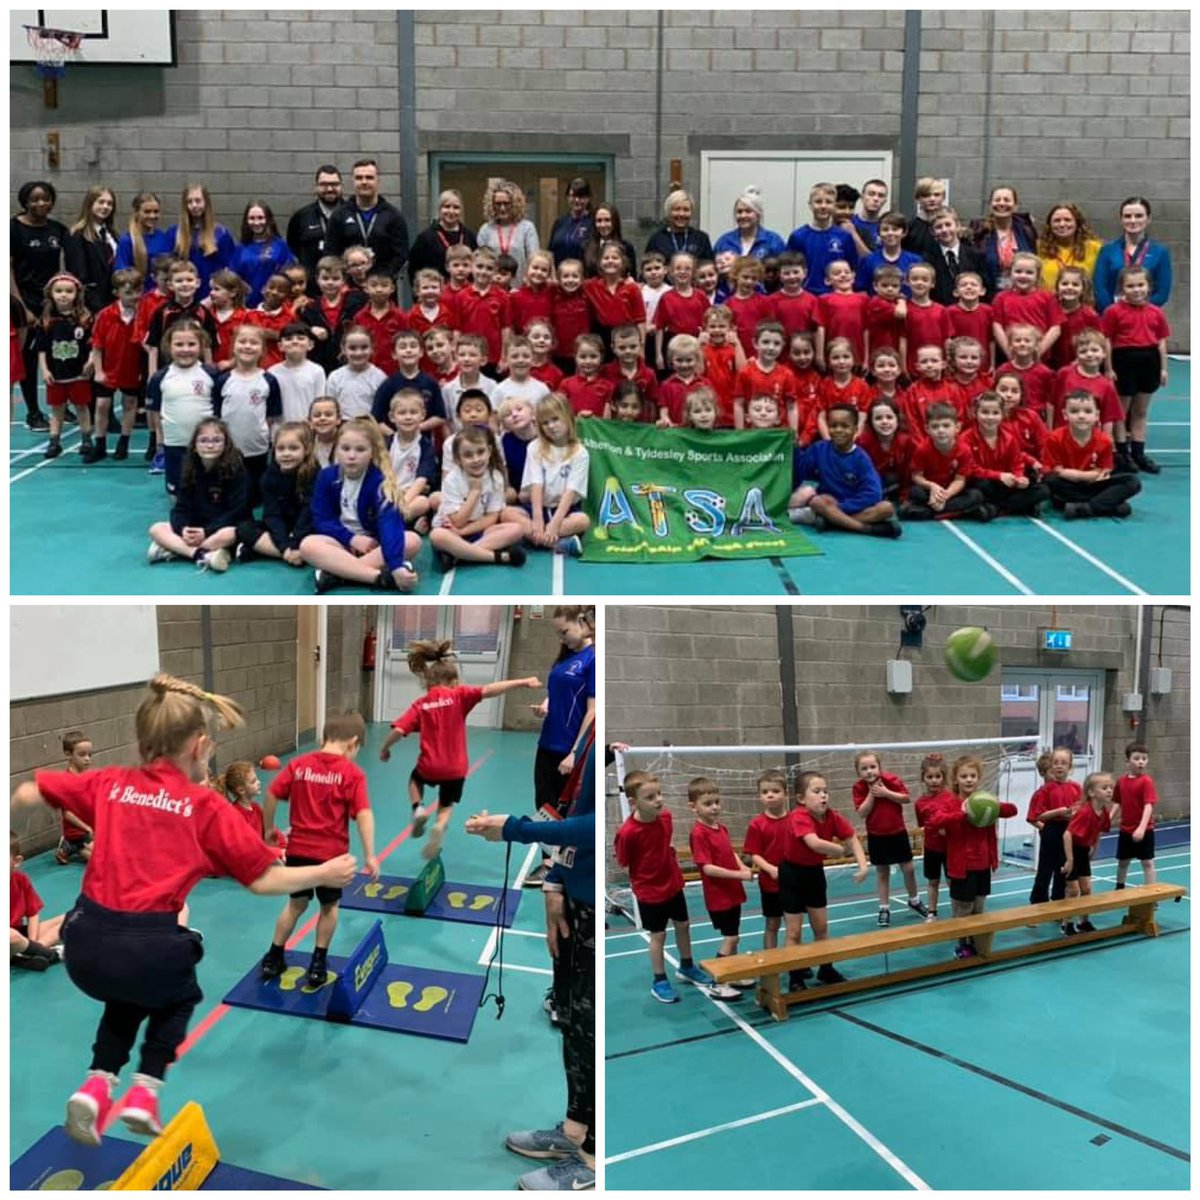 #Year1 #Year2 Well done to our 12 children who this afternoon competed in the ATSA athletics event at Fred Longworth High School. Such great talent and enthusiasm on display!